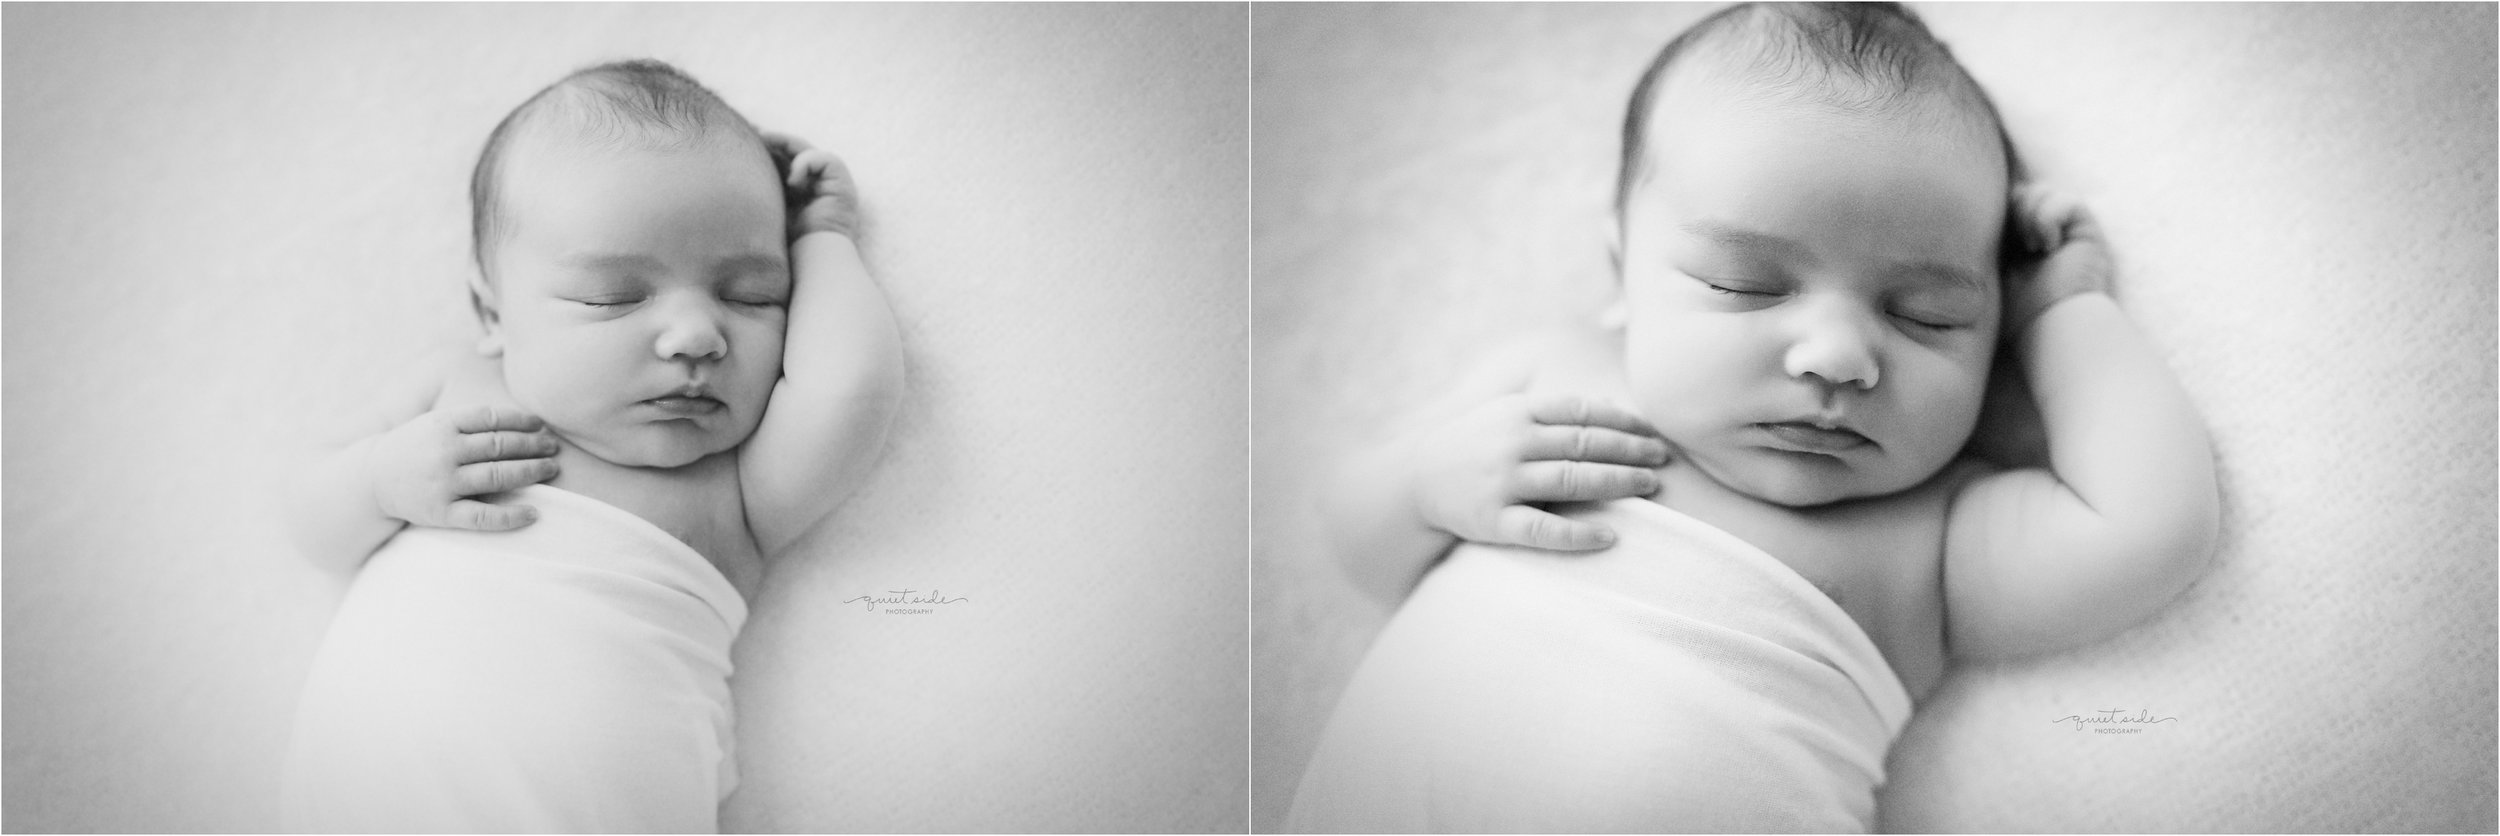 QuietSidePhotography-LoudounCounty-Newborn-Photographer-studio-NorthernVA-2017-09-25_0005.jpg